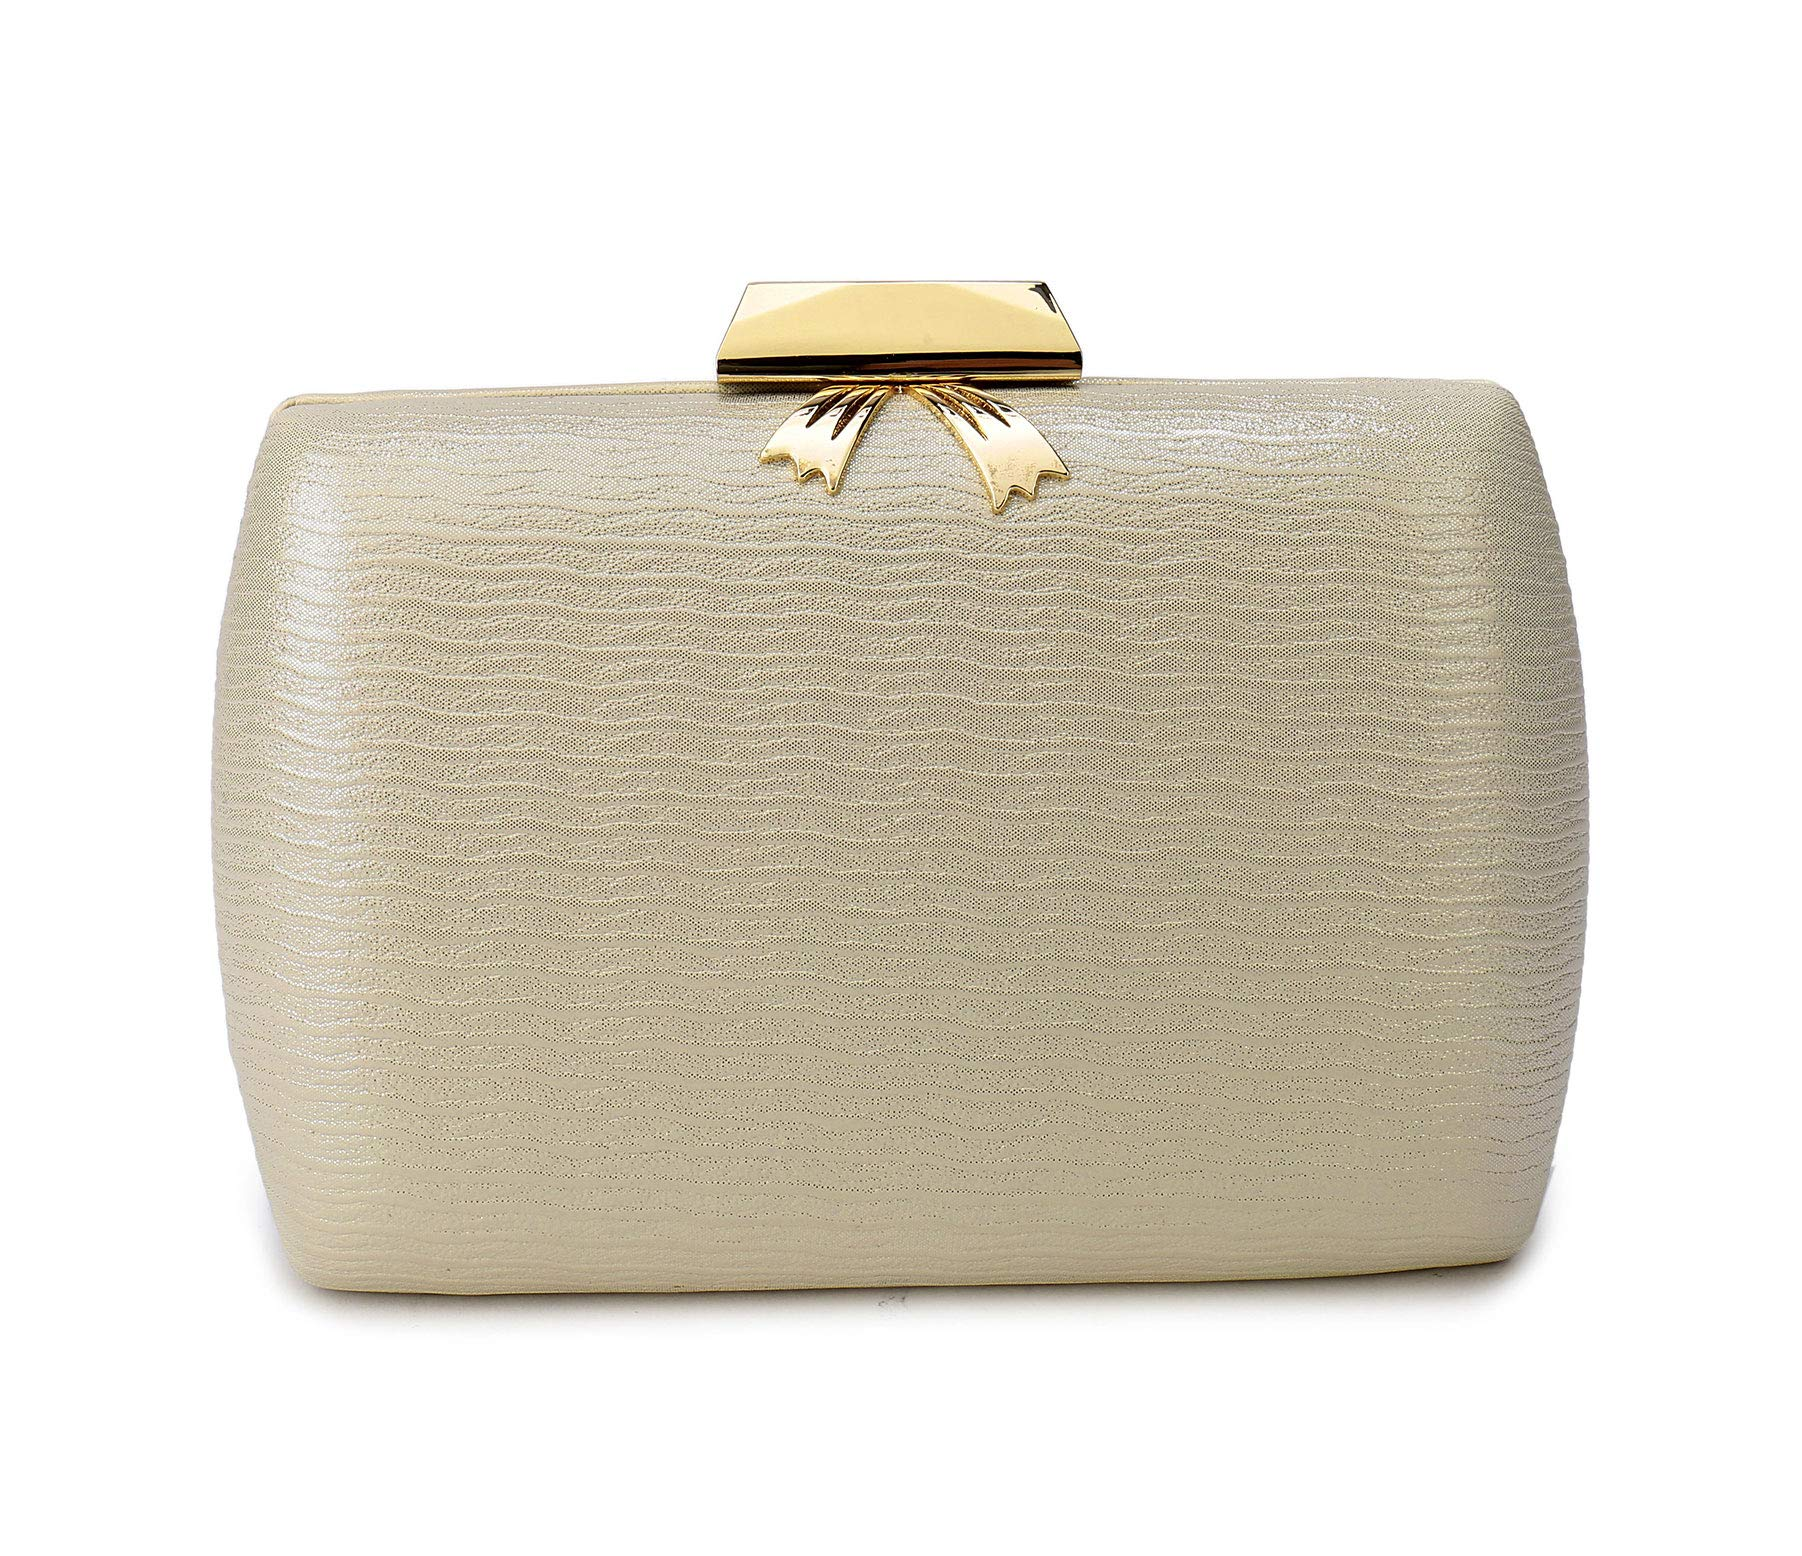 Leather Evening Clutches Handbag Bridal Purse Party Bags For Prom Cocktail Wedding Women/Girls (Gold)